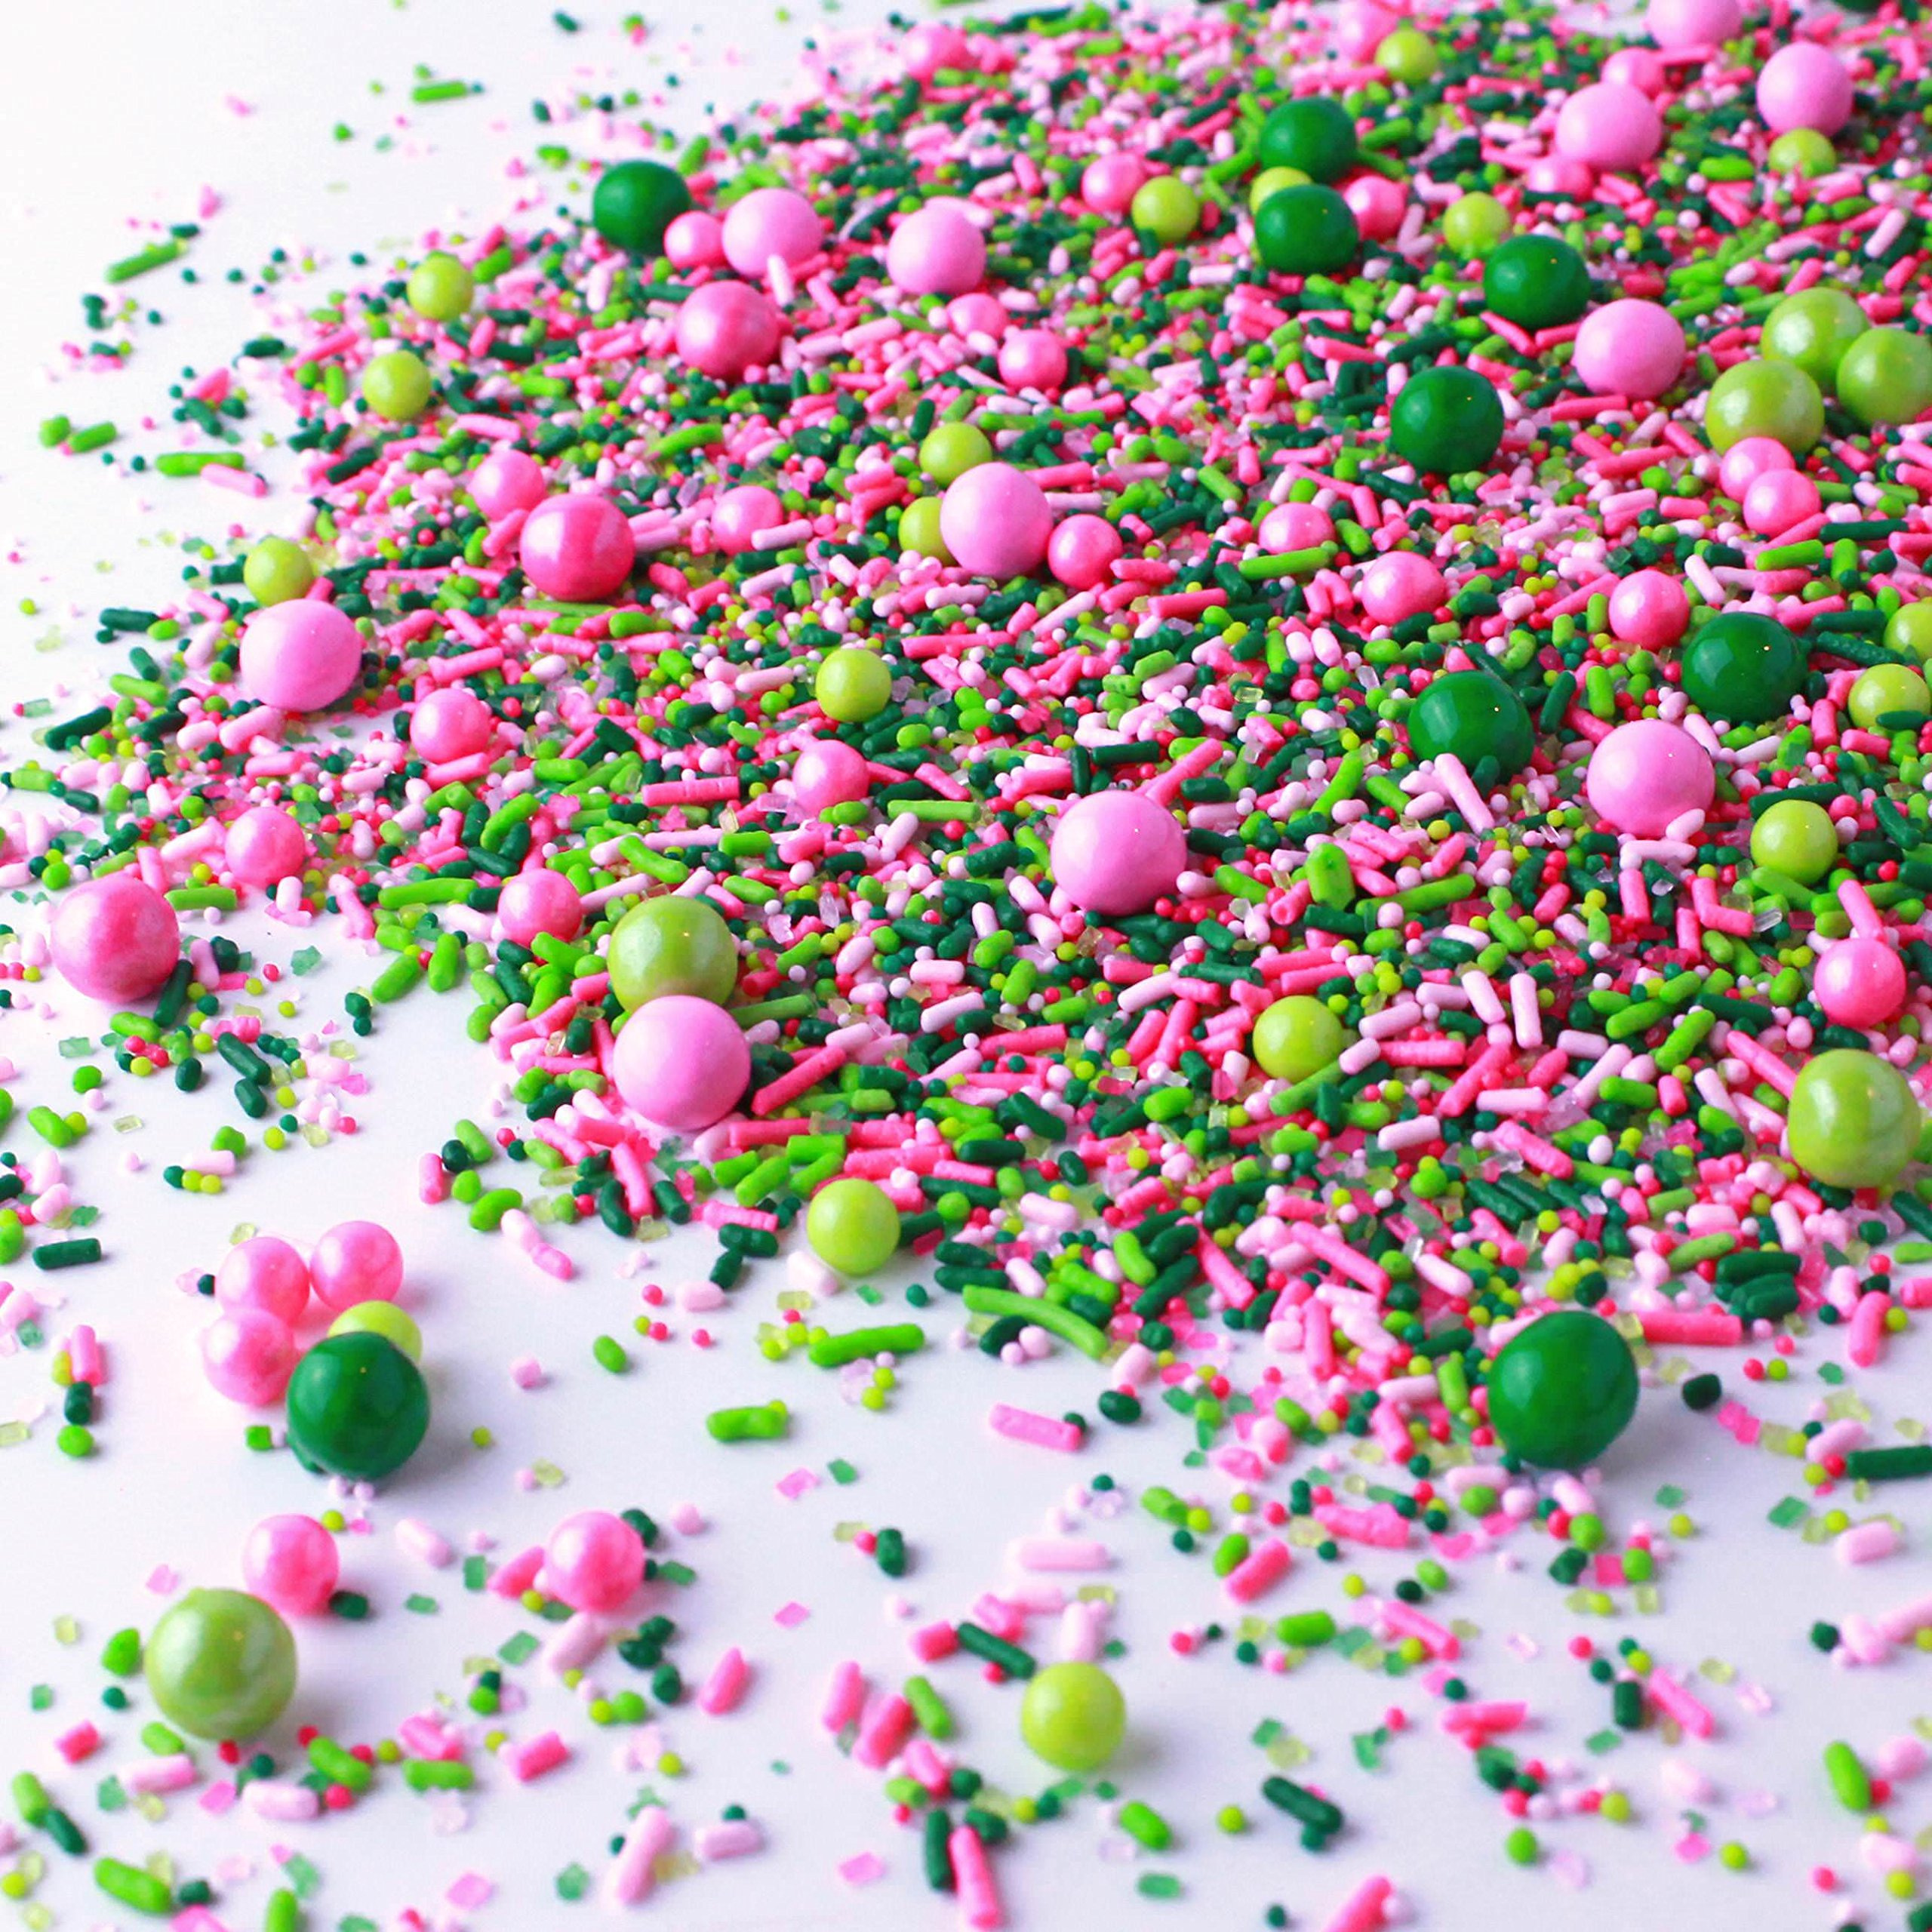 Killarney Rose Sprinkle Mix | White | Pink| Green and Lime | For Ladies | Sorority | Gluten Friendly Sprinkles, 2OZ (sample size)